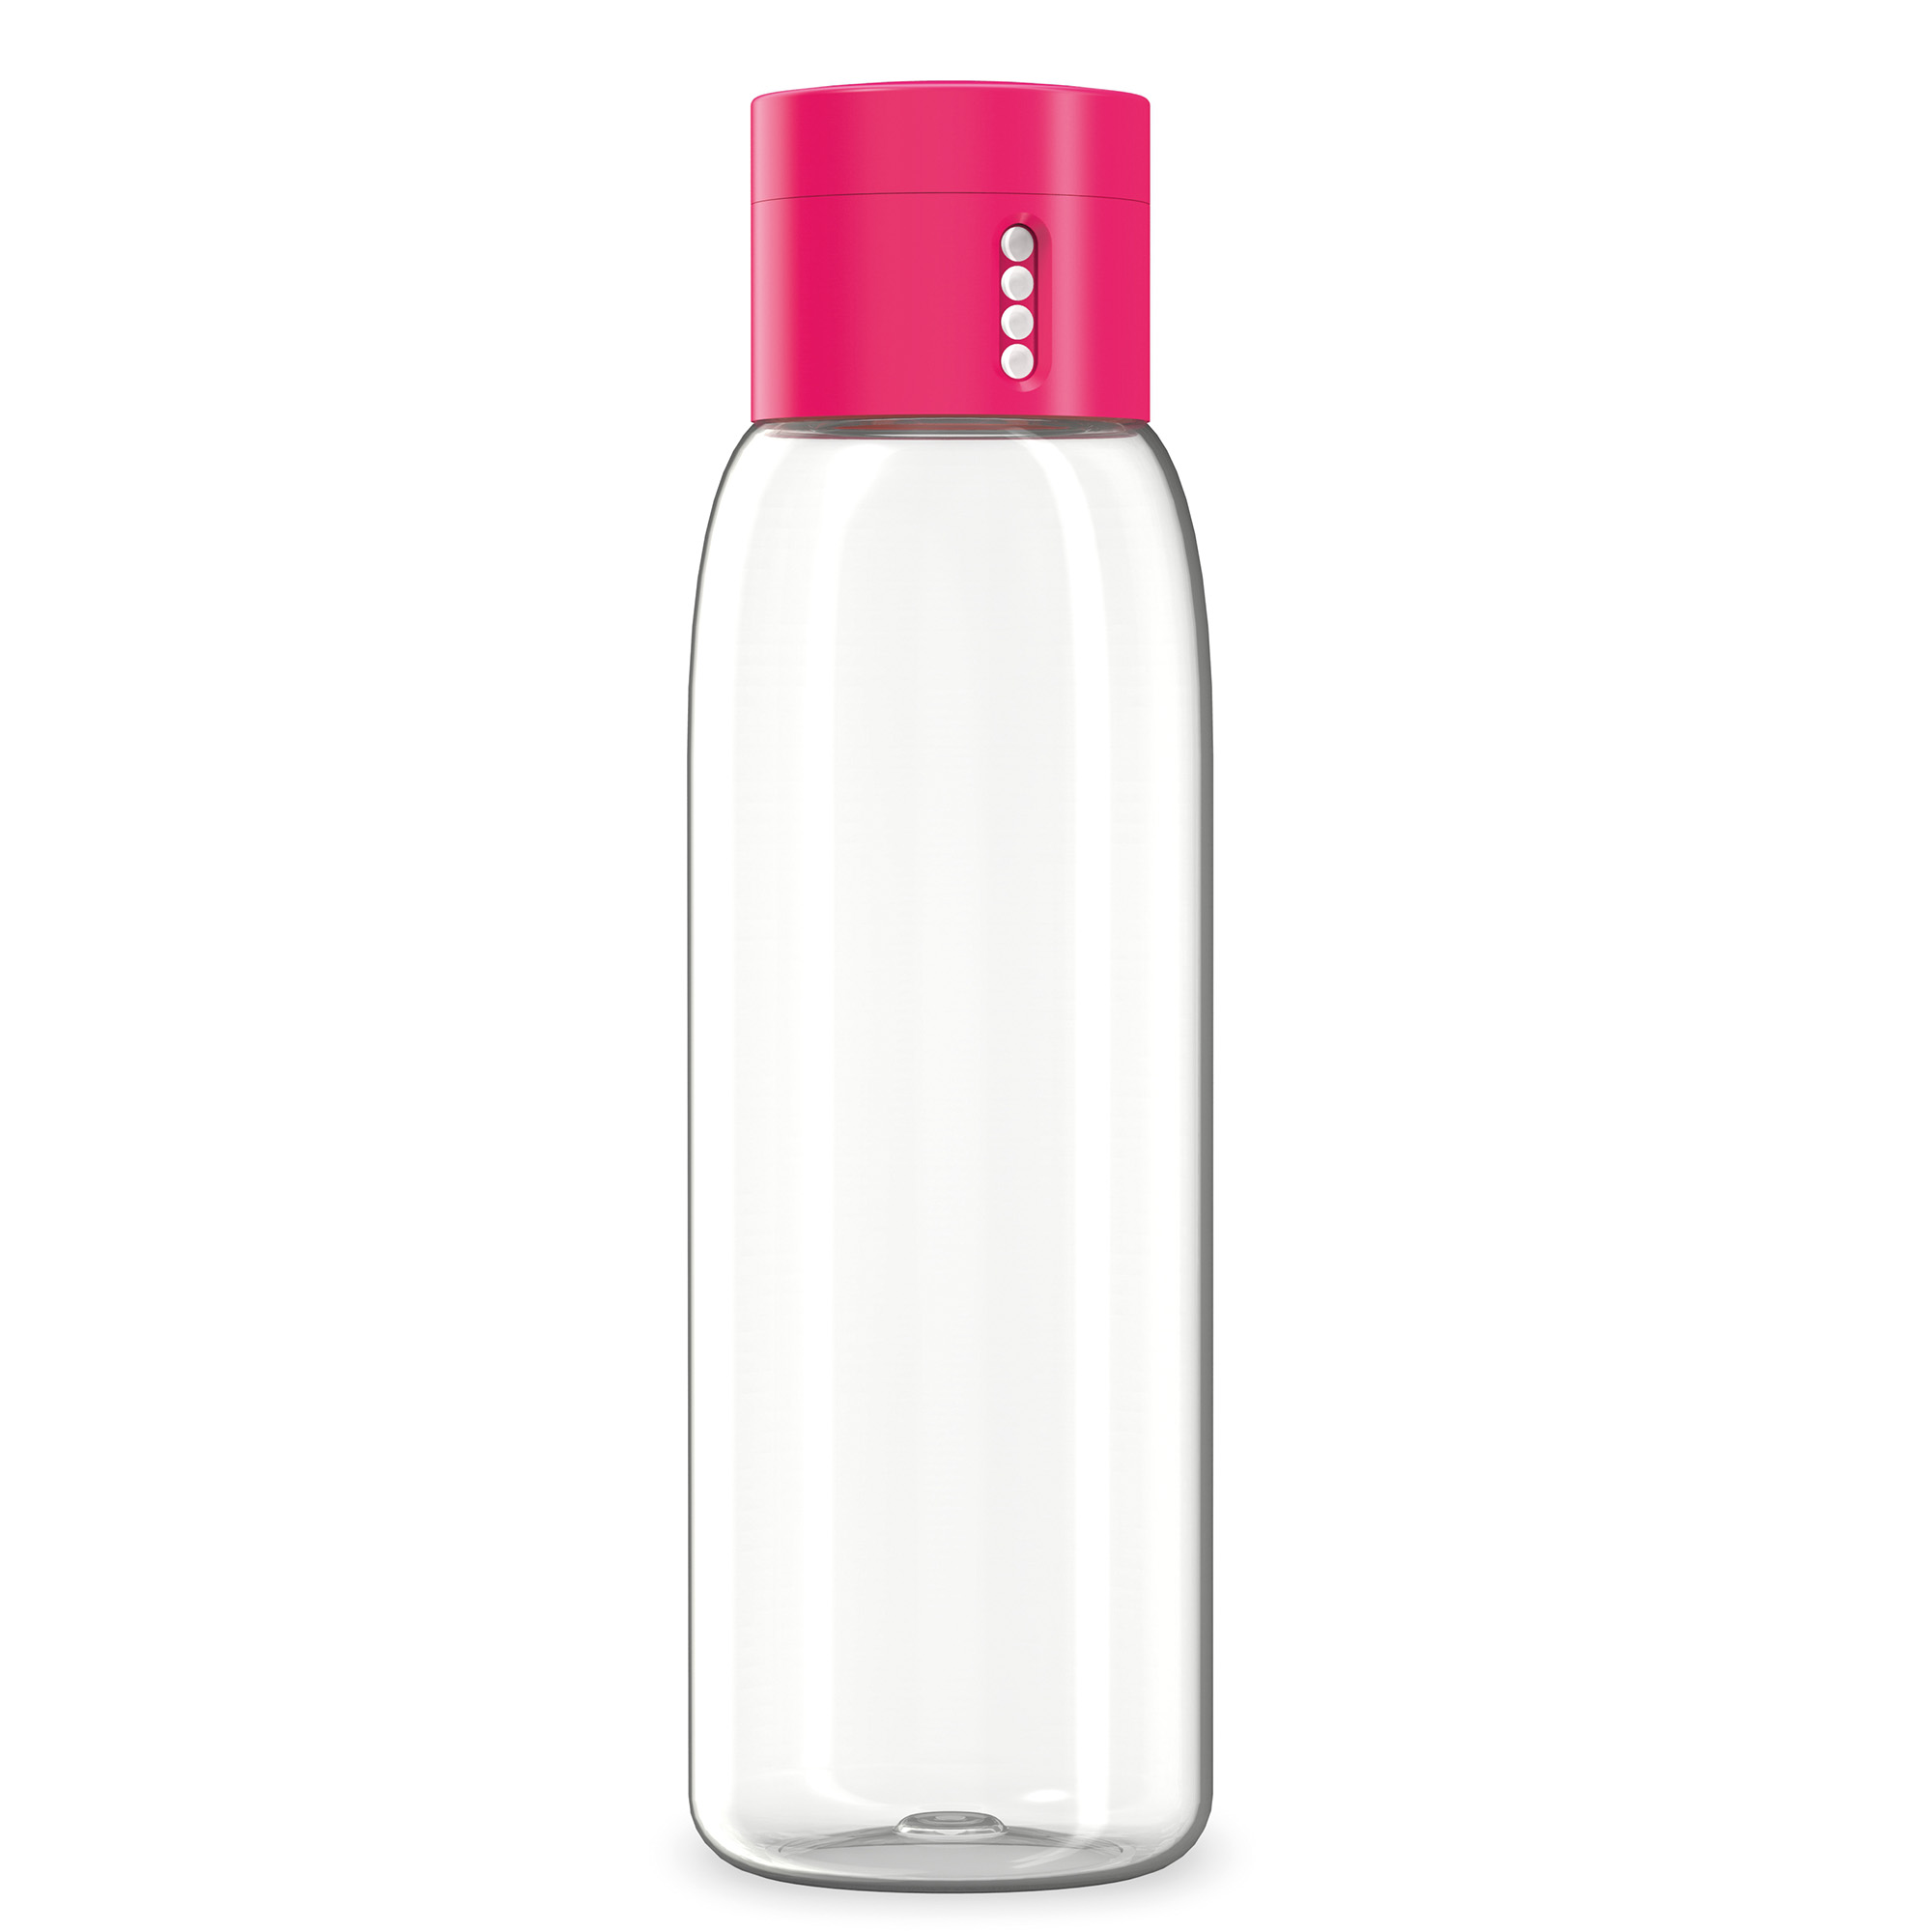 DOT HYDRATION TRACKING WATER BOTTLE 600ML PINK